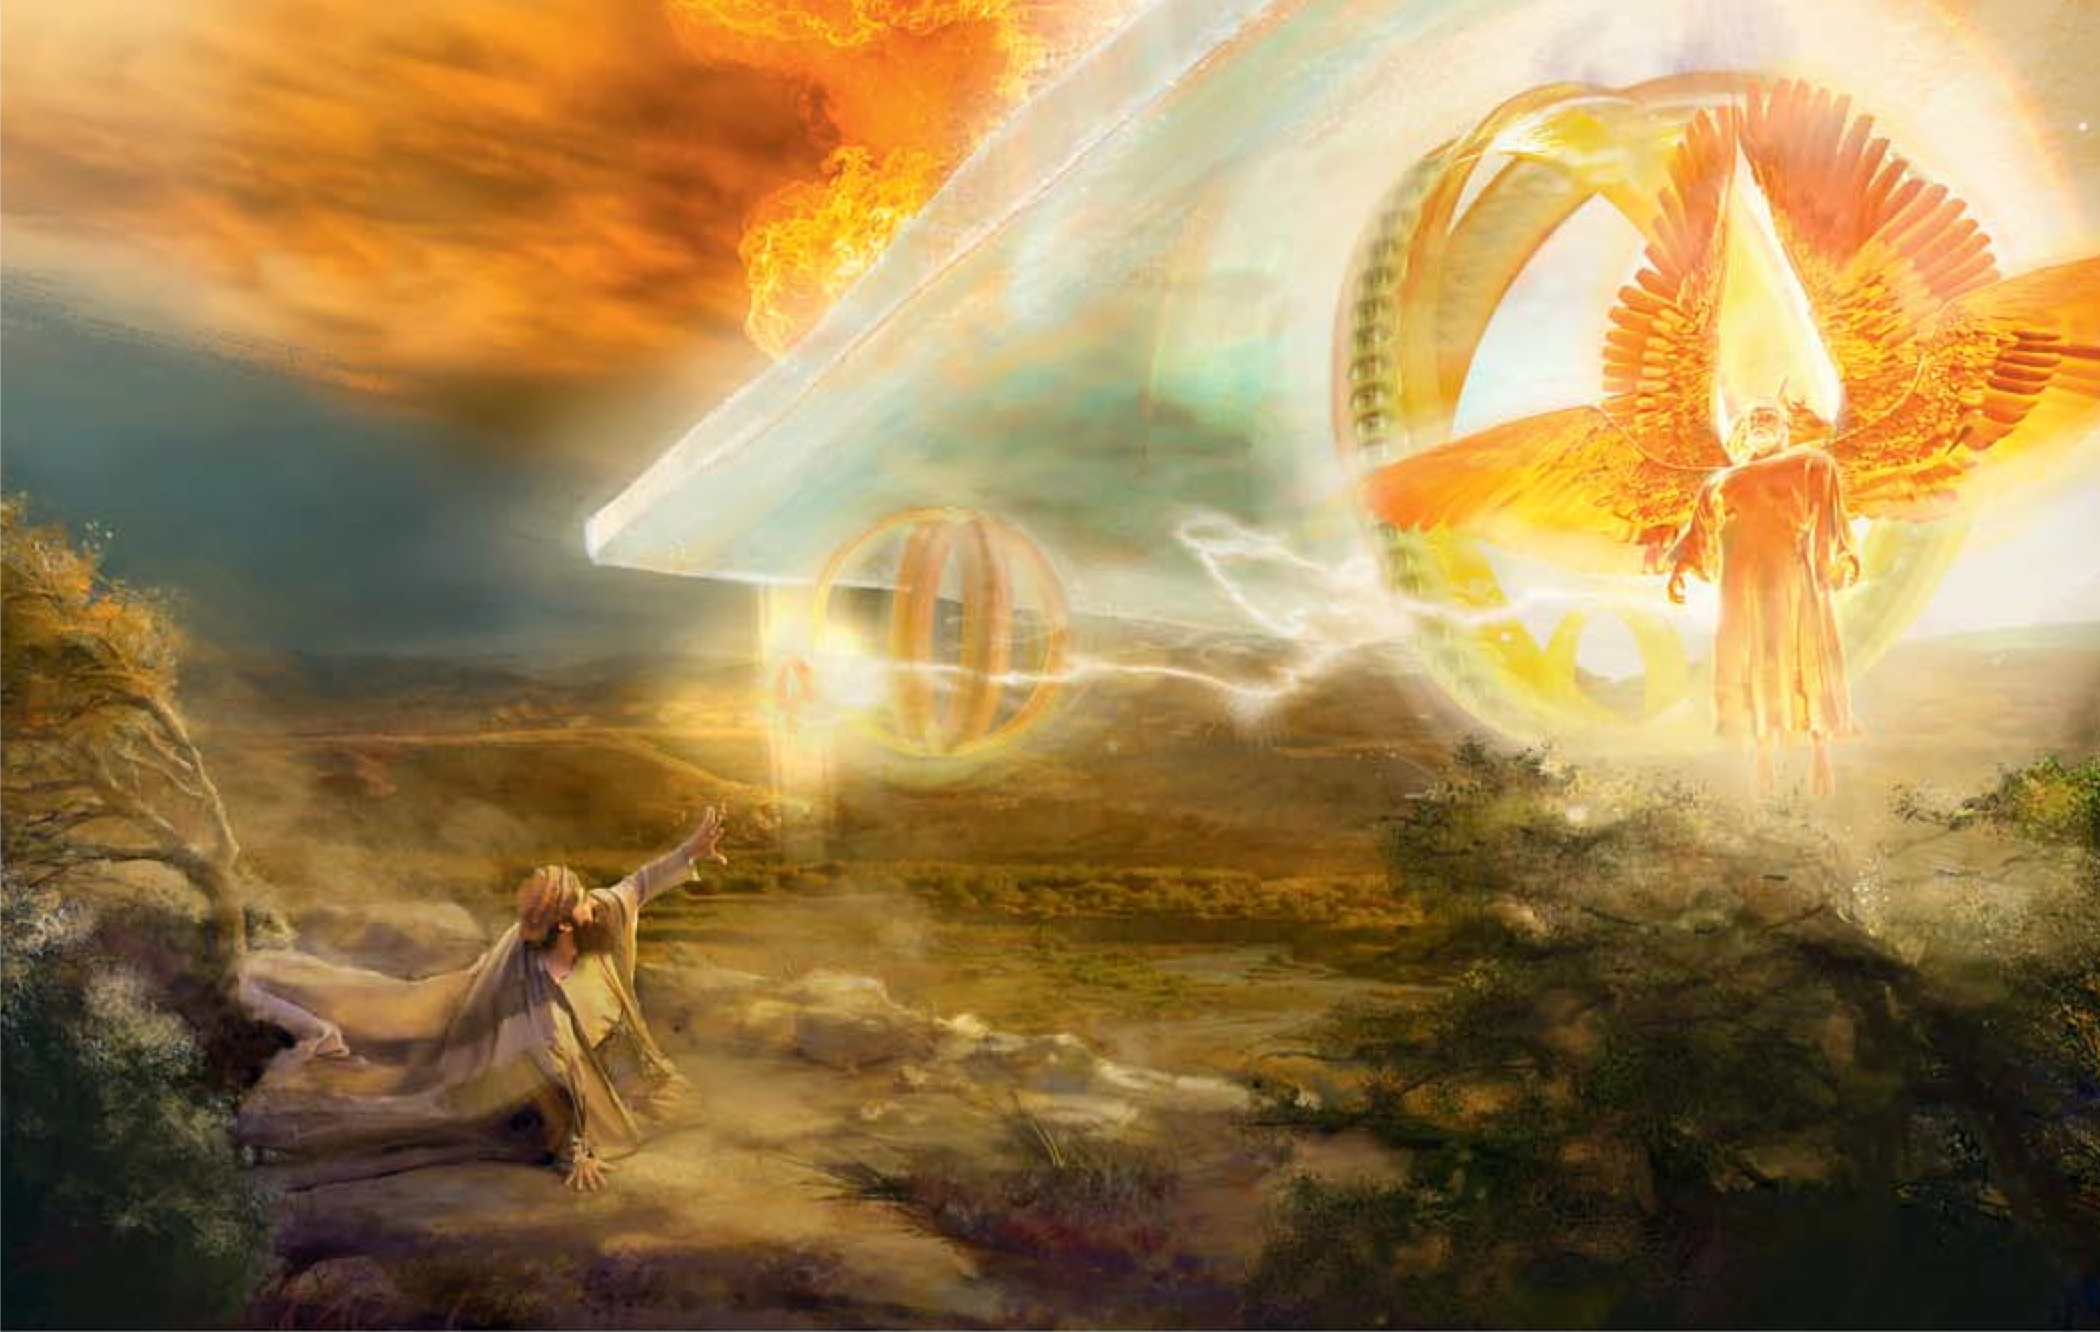 Pin By Gloria Hamlet On Jw Org: Celestial Chariot, Illustration From 2013